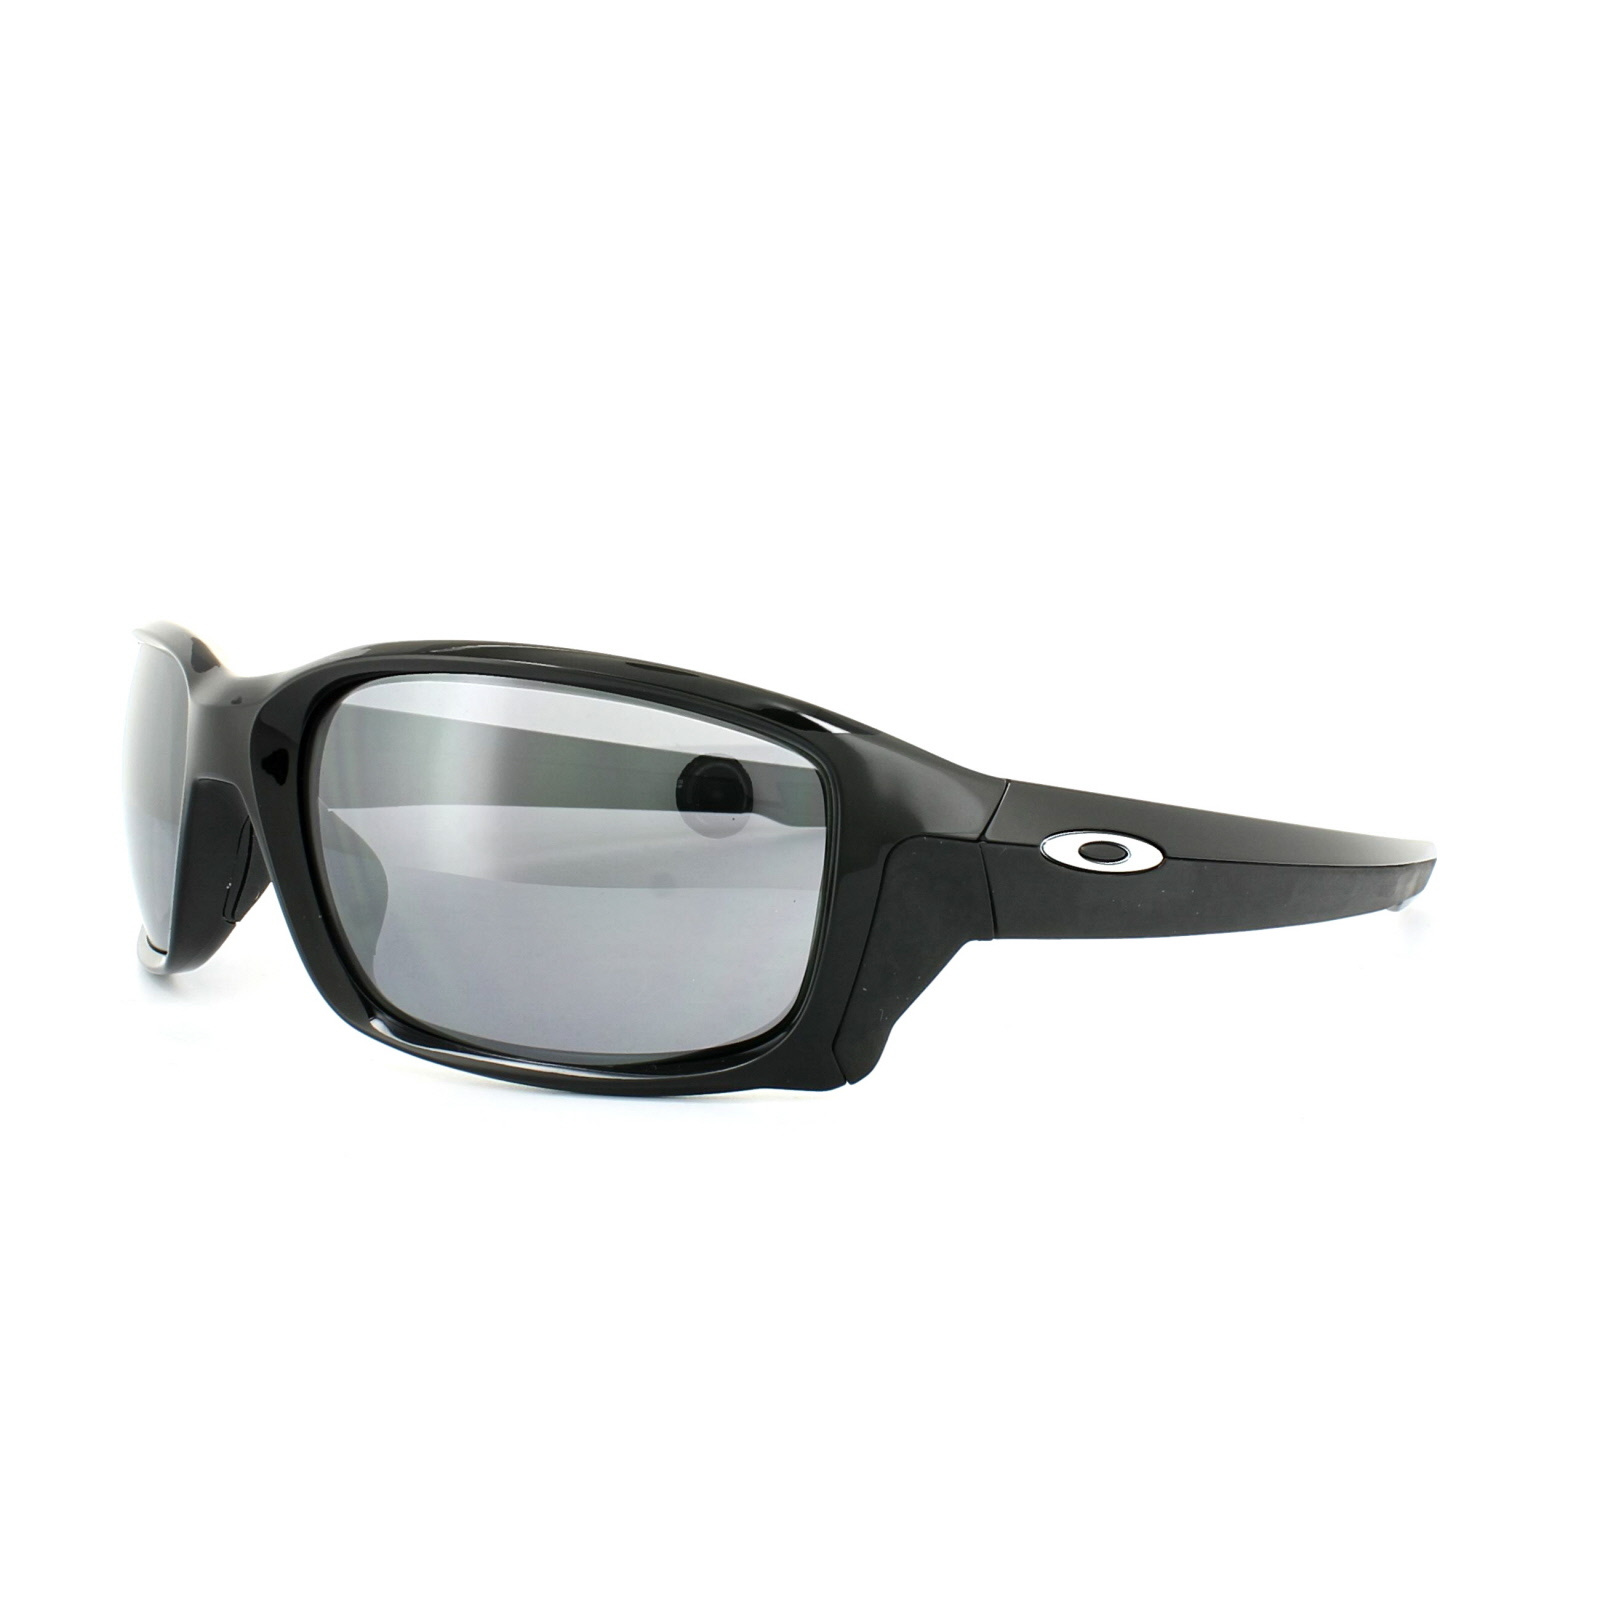 ca6478f4b7 Sentinel Oakley Sunglasses Straightlink OO9331-01 Polished Black Black  Iridium